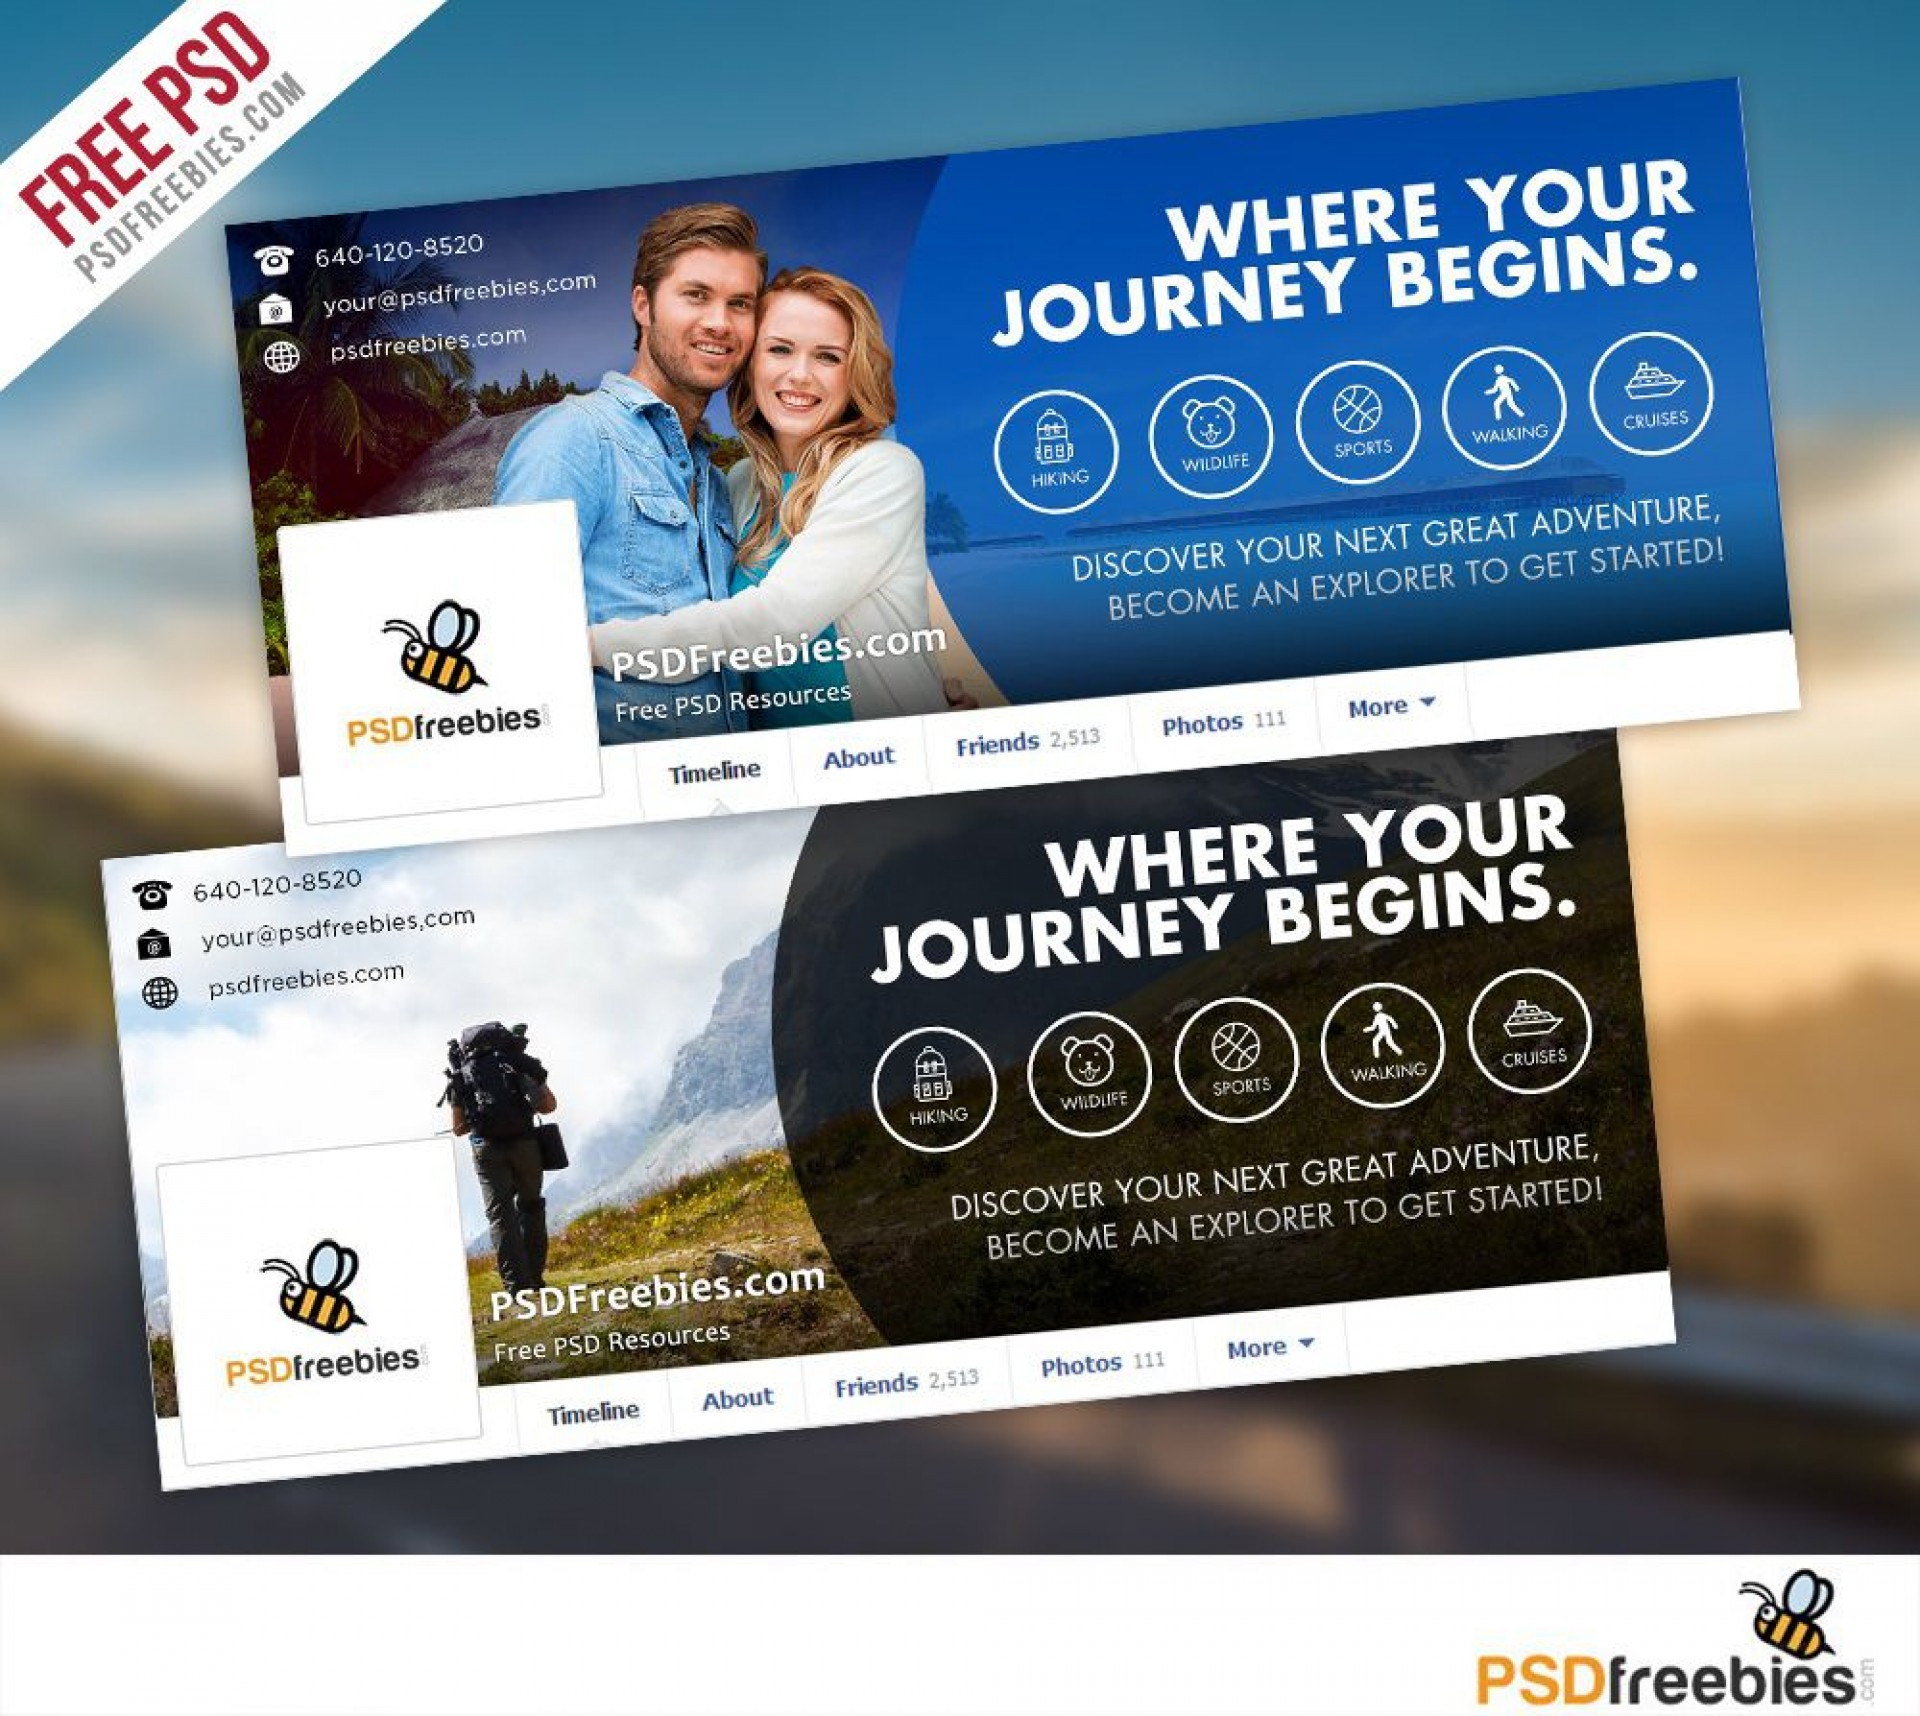 009 Incredible Free Facebook Cover Template Highest Clarity  Templates Photoshop1920